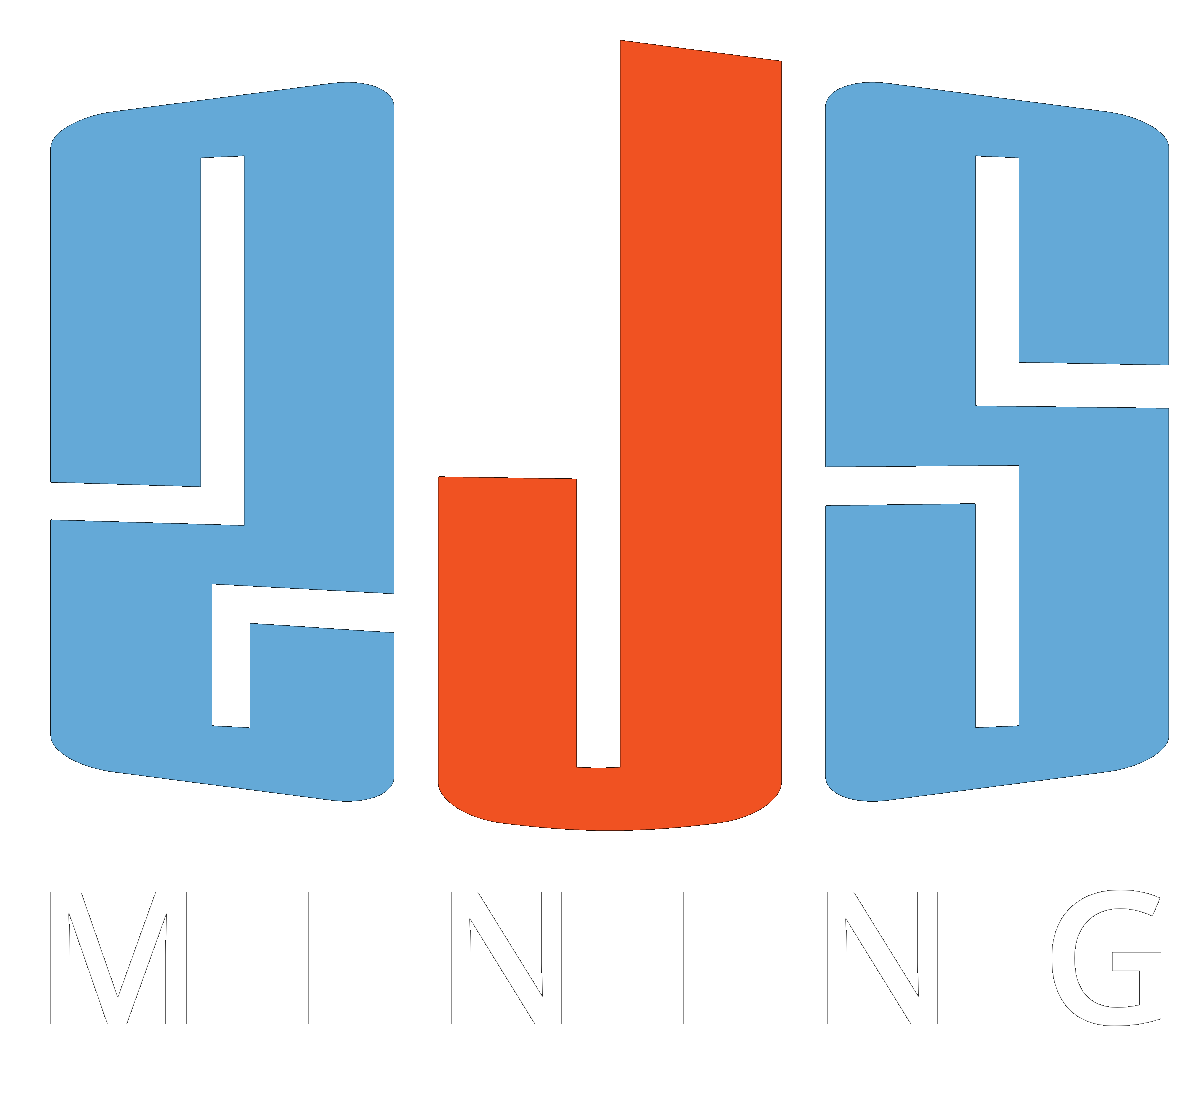 2JS Mining | Value Through Planning